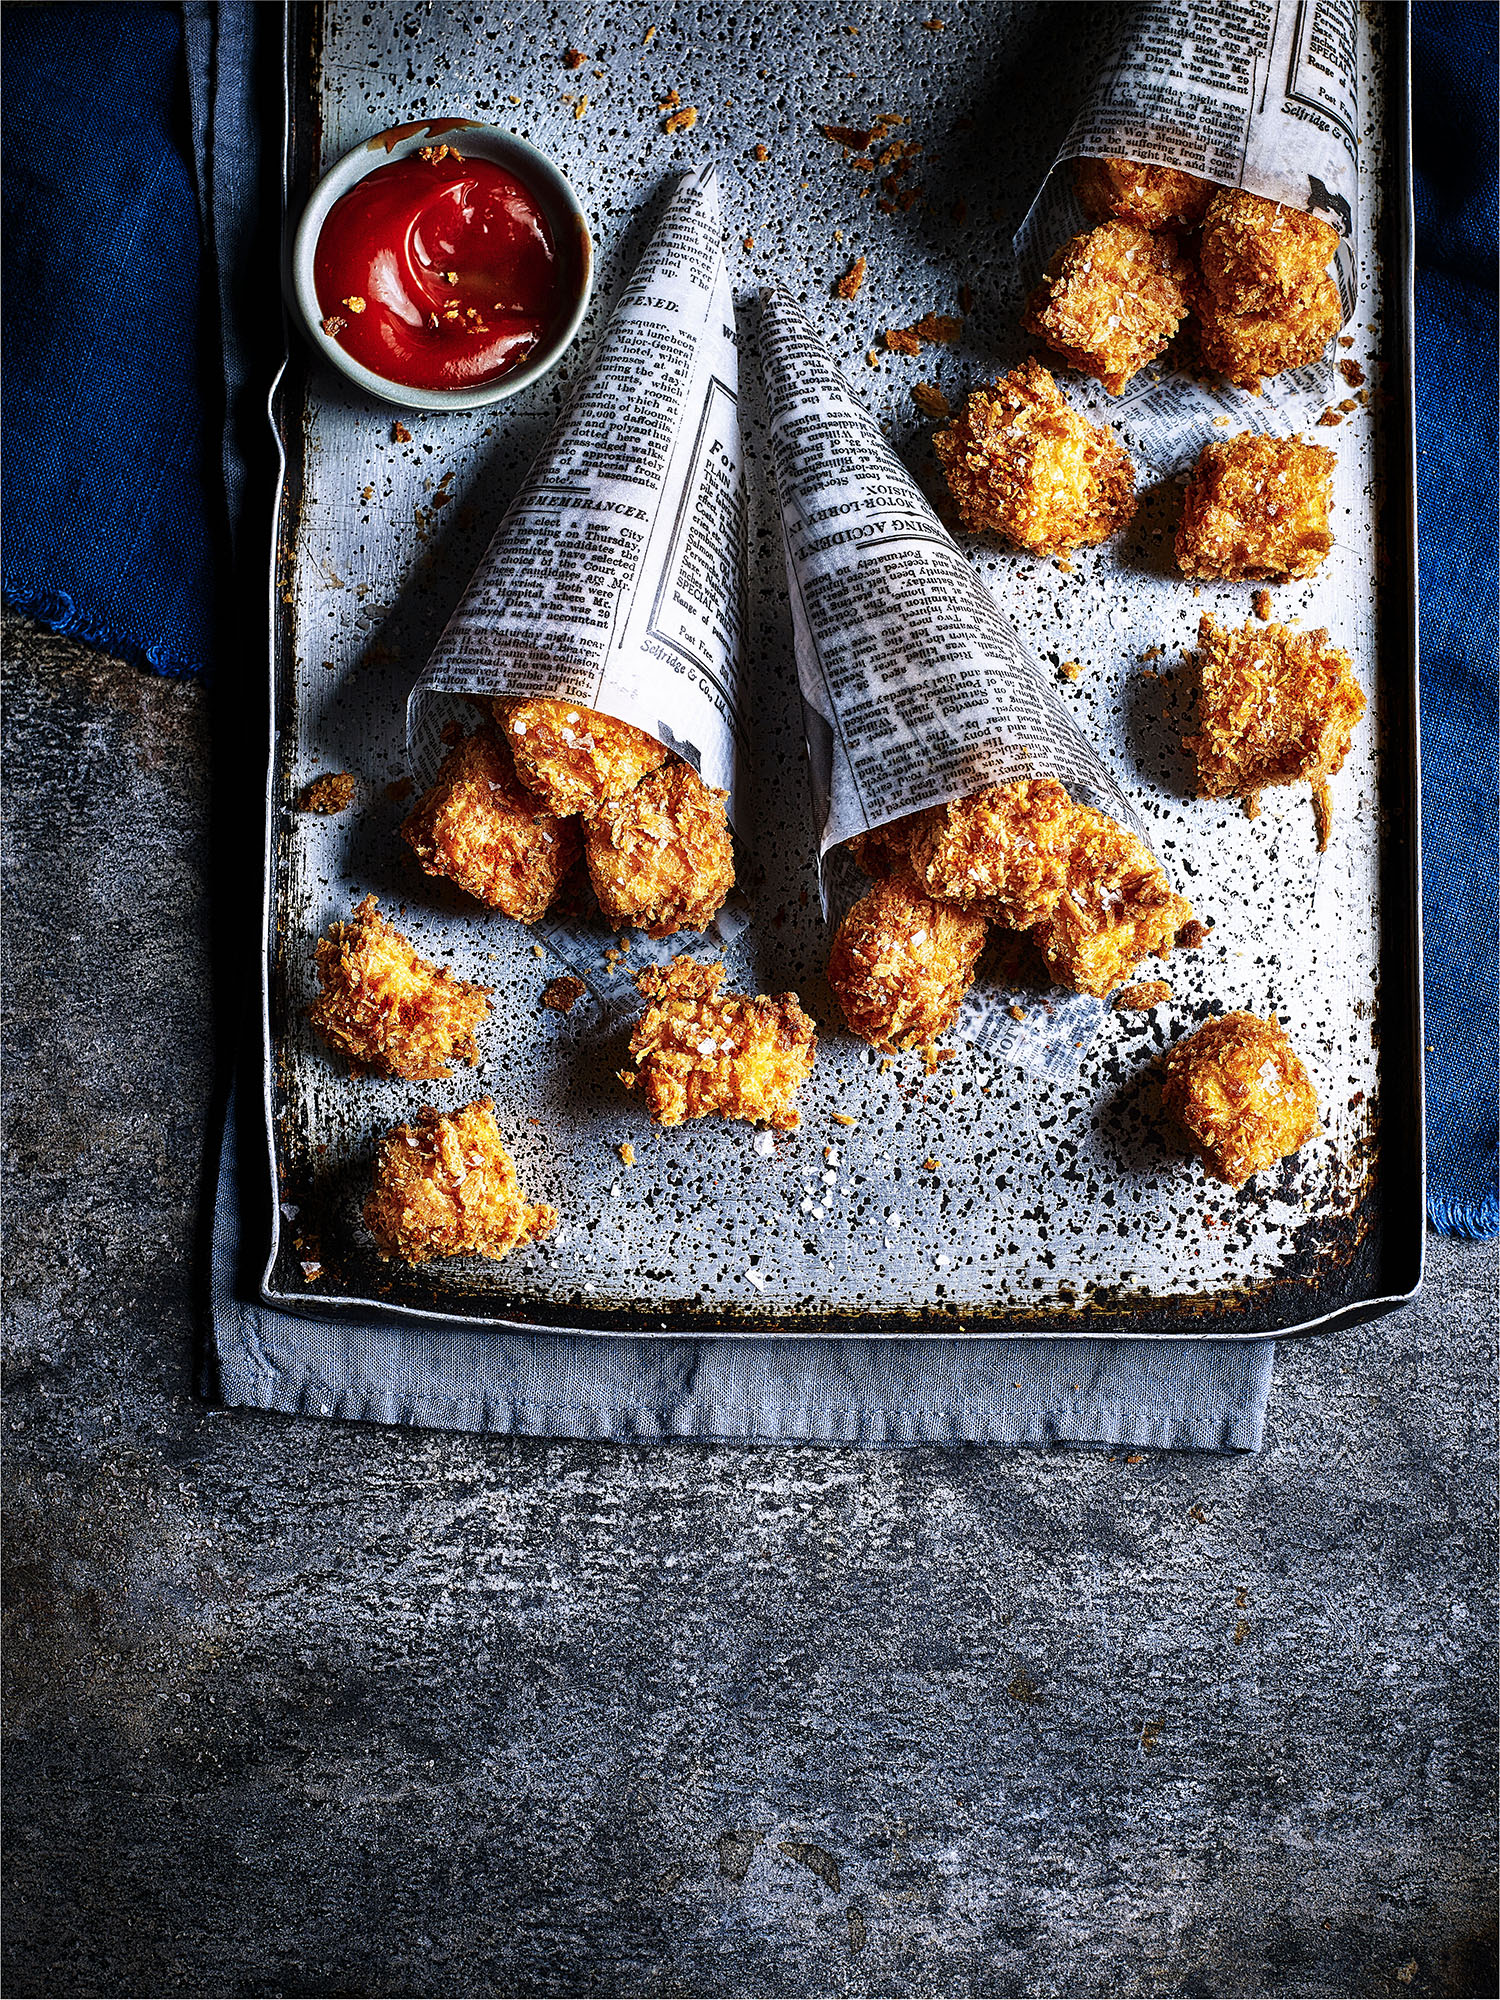 Vegan 'chicken' nuggets Photograph Kris Kirkham Prop Styling Davina Perkins Recipe Jenna Leiter